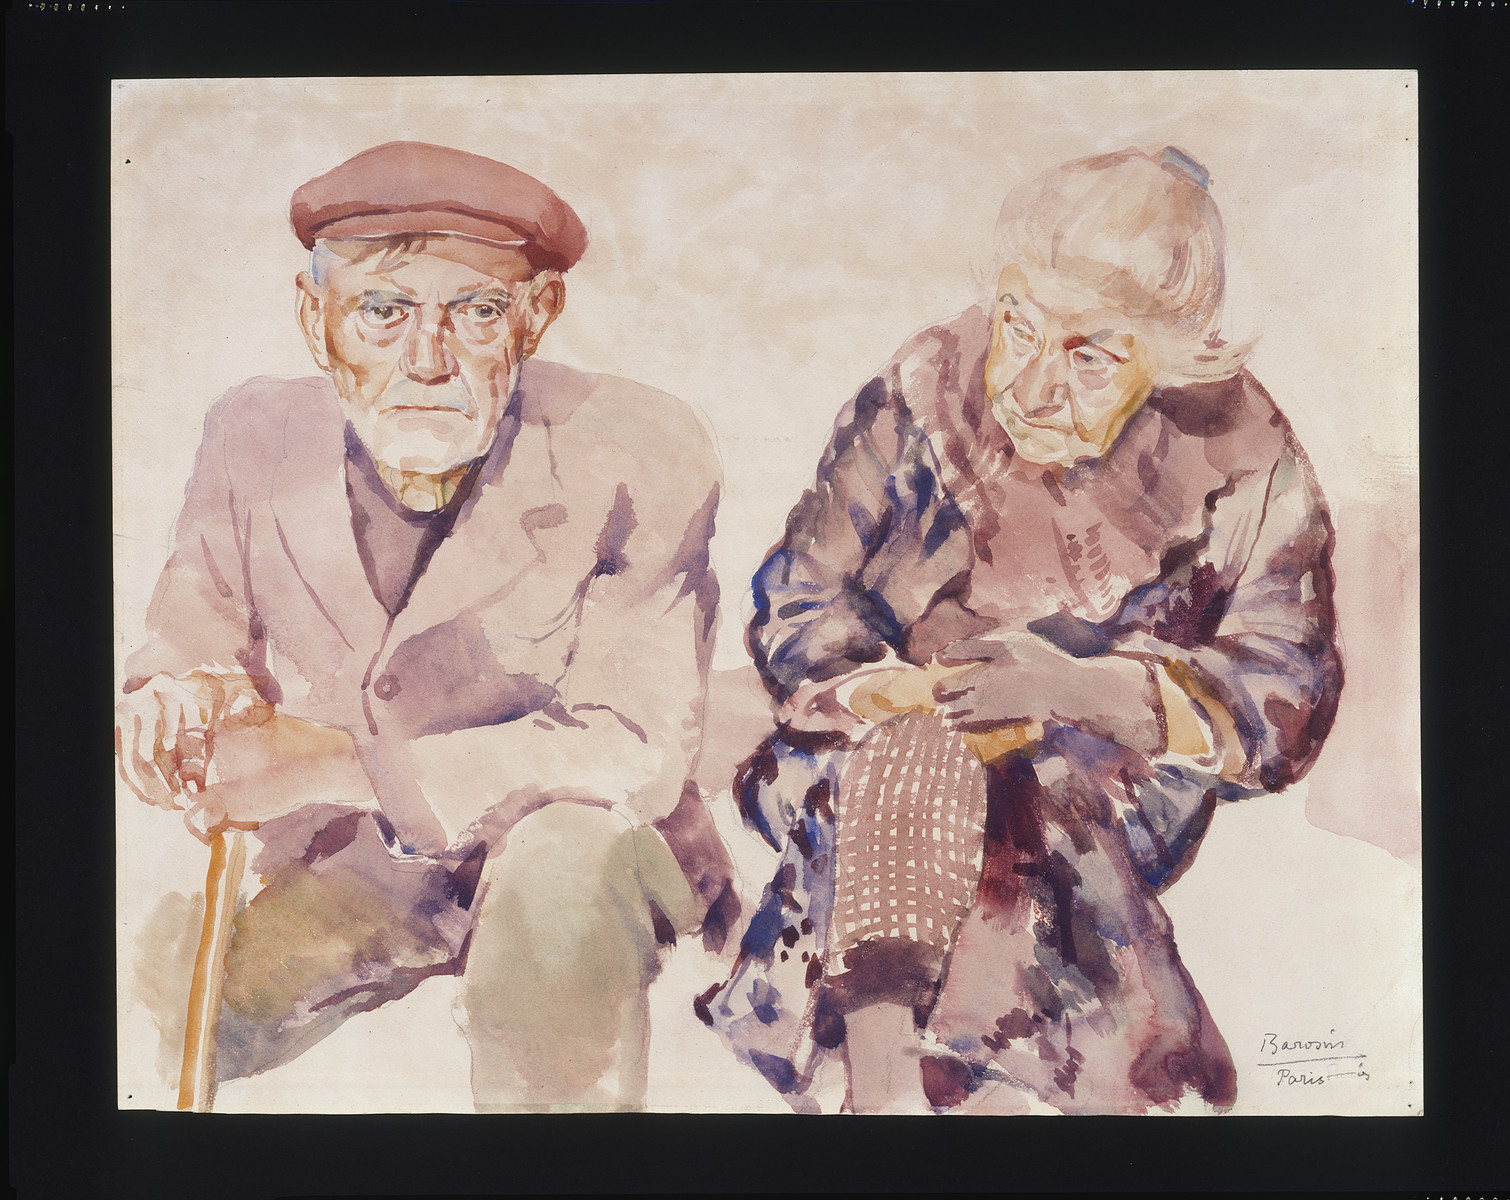 Painting by Jacob Barosin of an elderly couple.